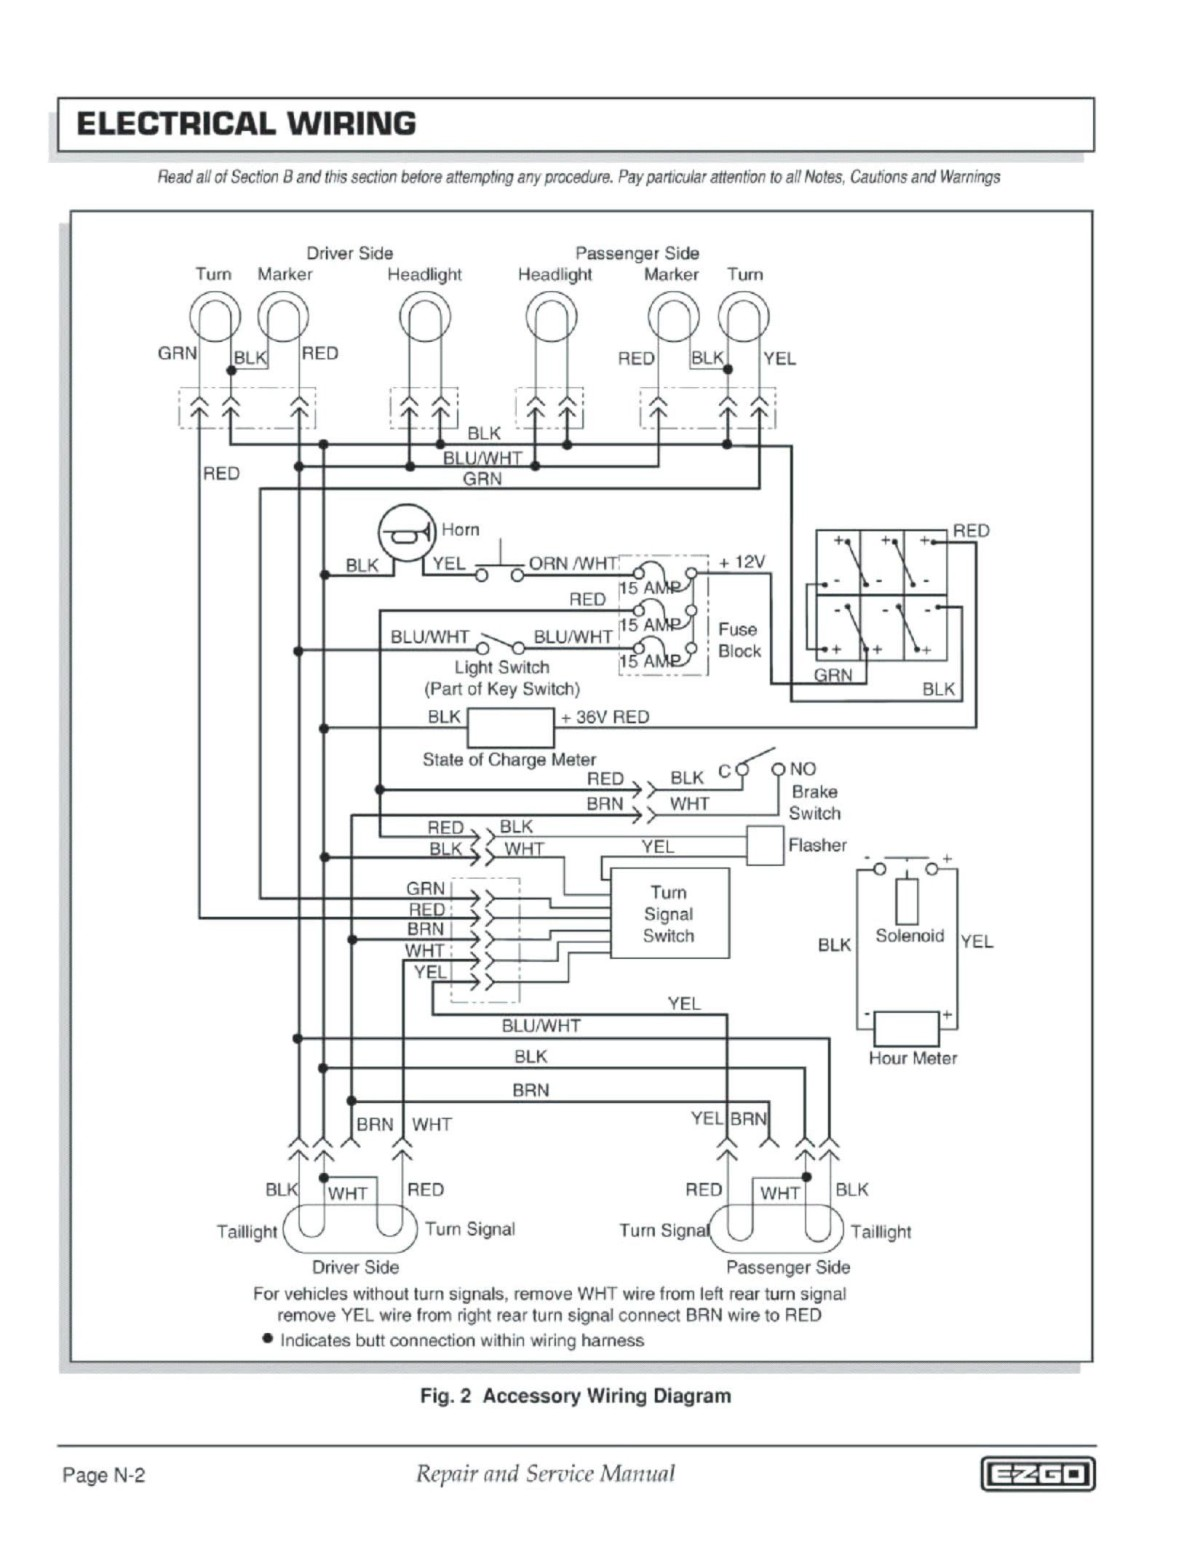 Wiring Diagram Outlet To Switch